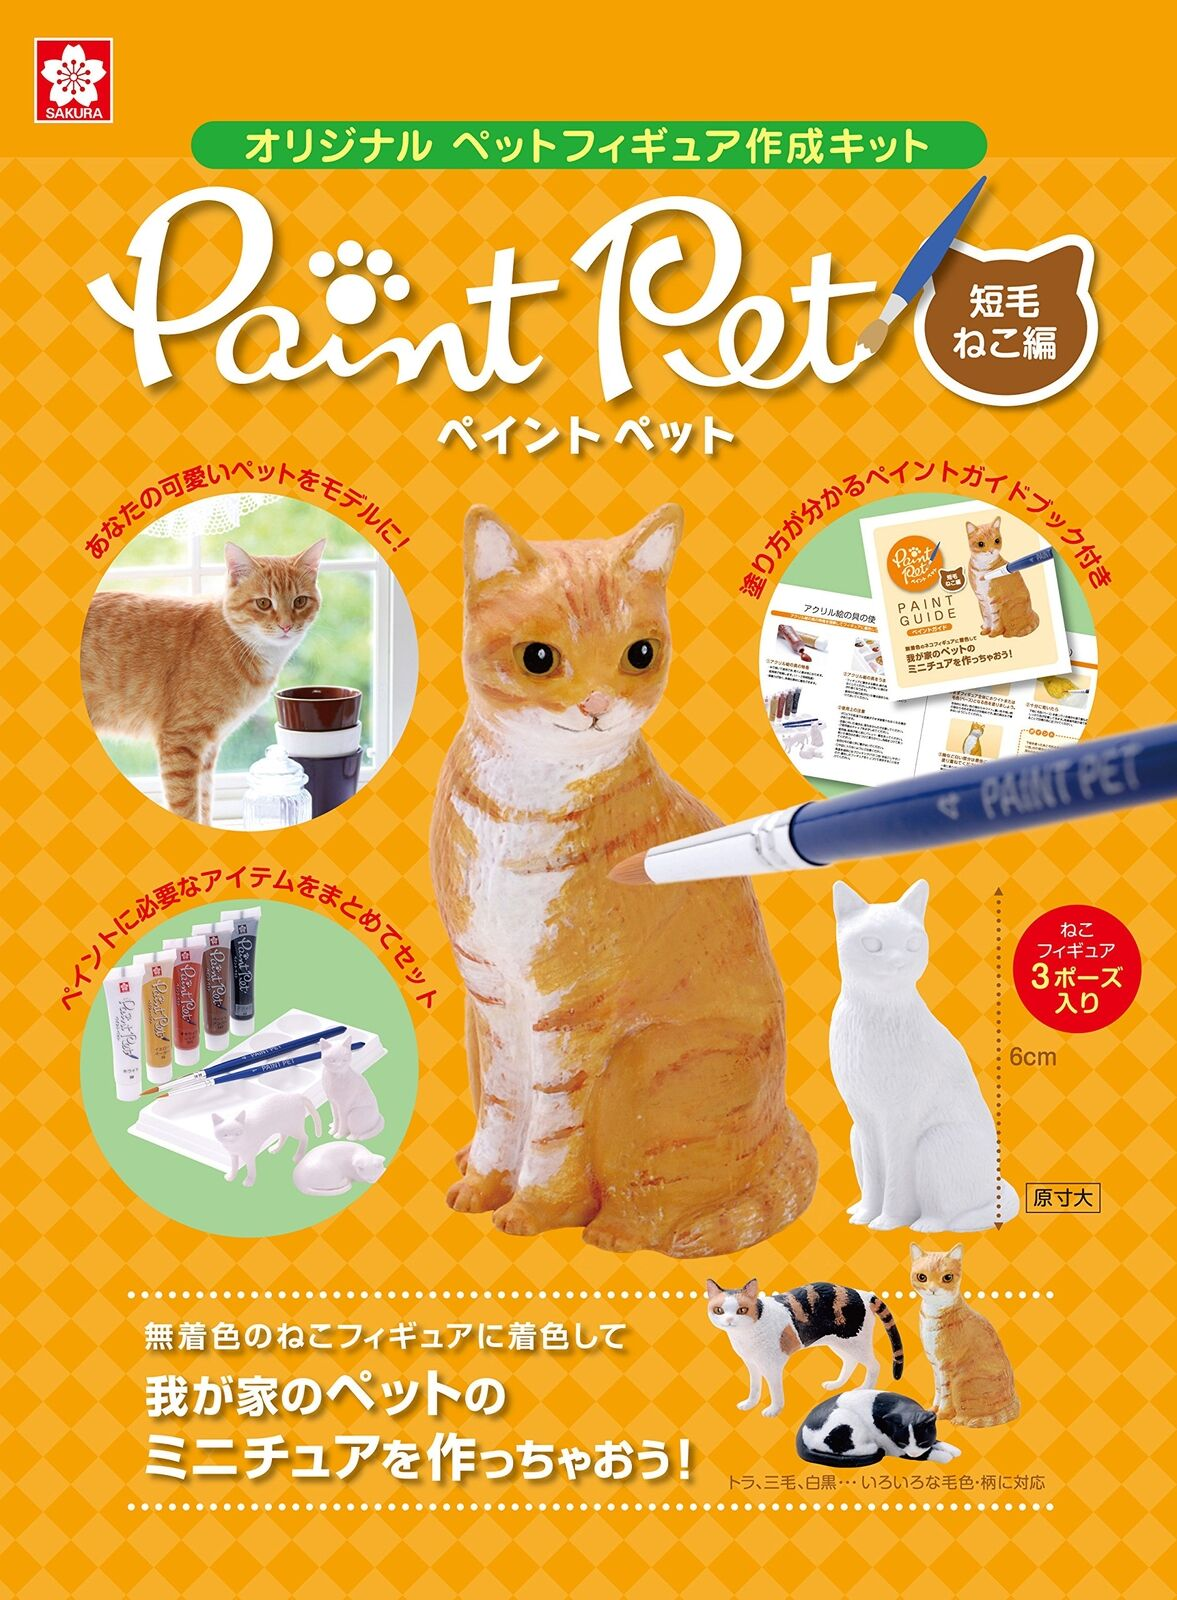 Paint Pet Short Hair Cat Version Original Pet Figures Making Set w Extra